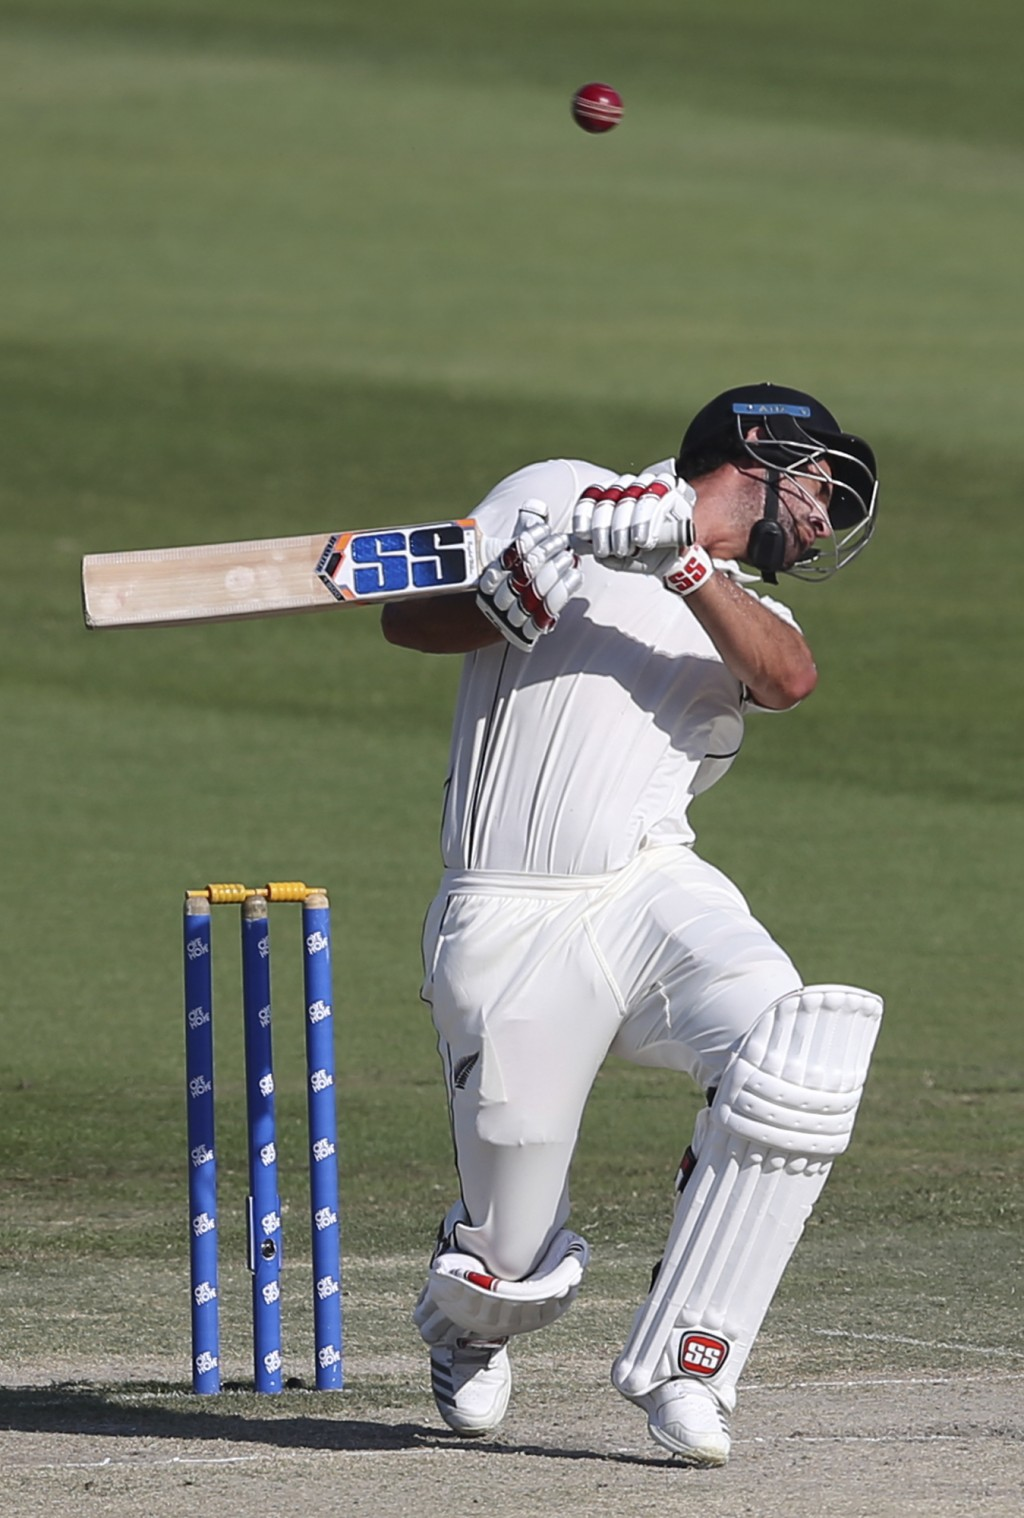 New Zealand's batsman Colin de Grandhomme skips the ball in their test match against Pakistan in Abu Dhabi, United Arab Emirates, Friday, Dec. 7, 2018